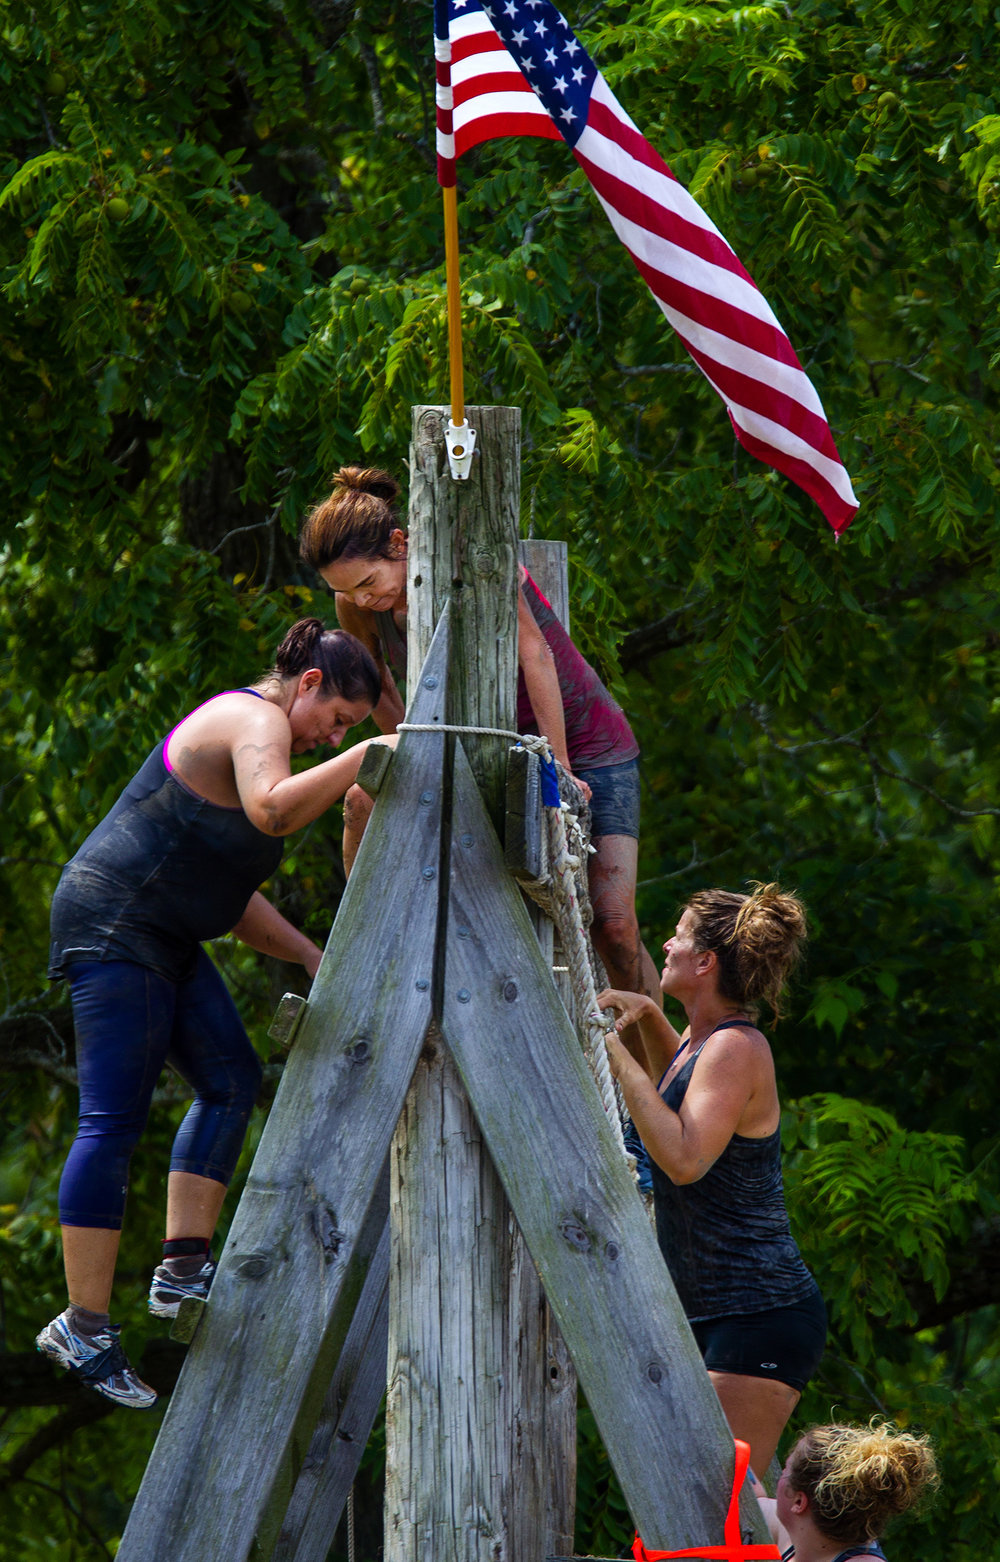 Competitors climb over a large barricade during the Big Dawg Dare in Litchfield Saturday, July 15, 2017. The race is an extreme 5k featuring muddy bogs, water, uphill climbs and obstacles. [Ted Schurter/The State Journal-Register]